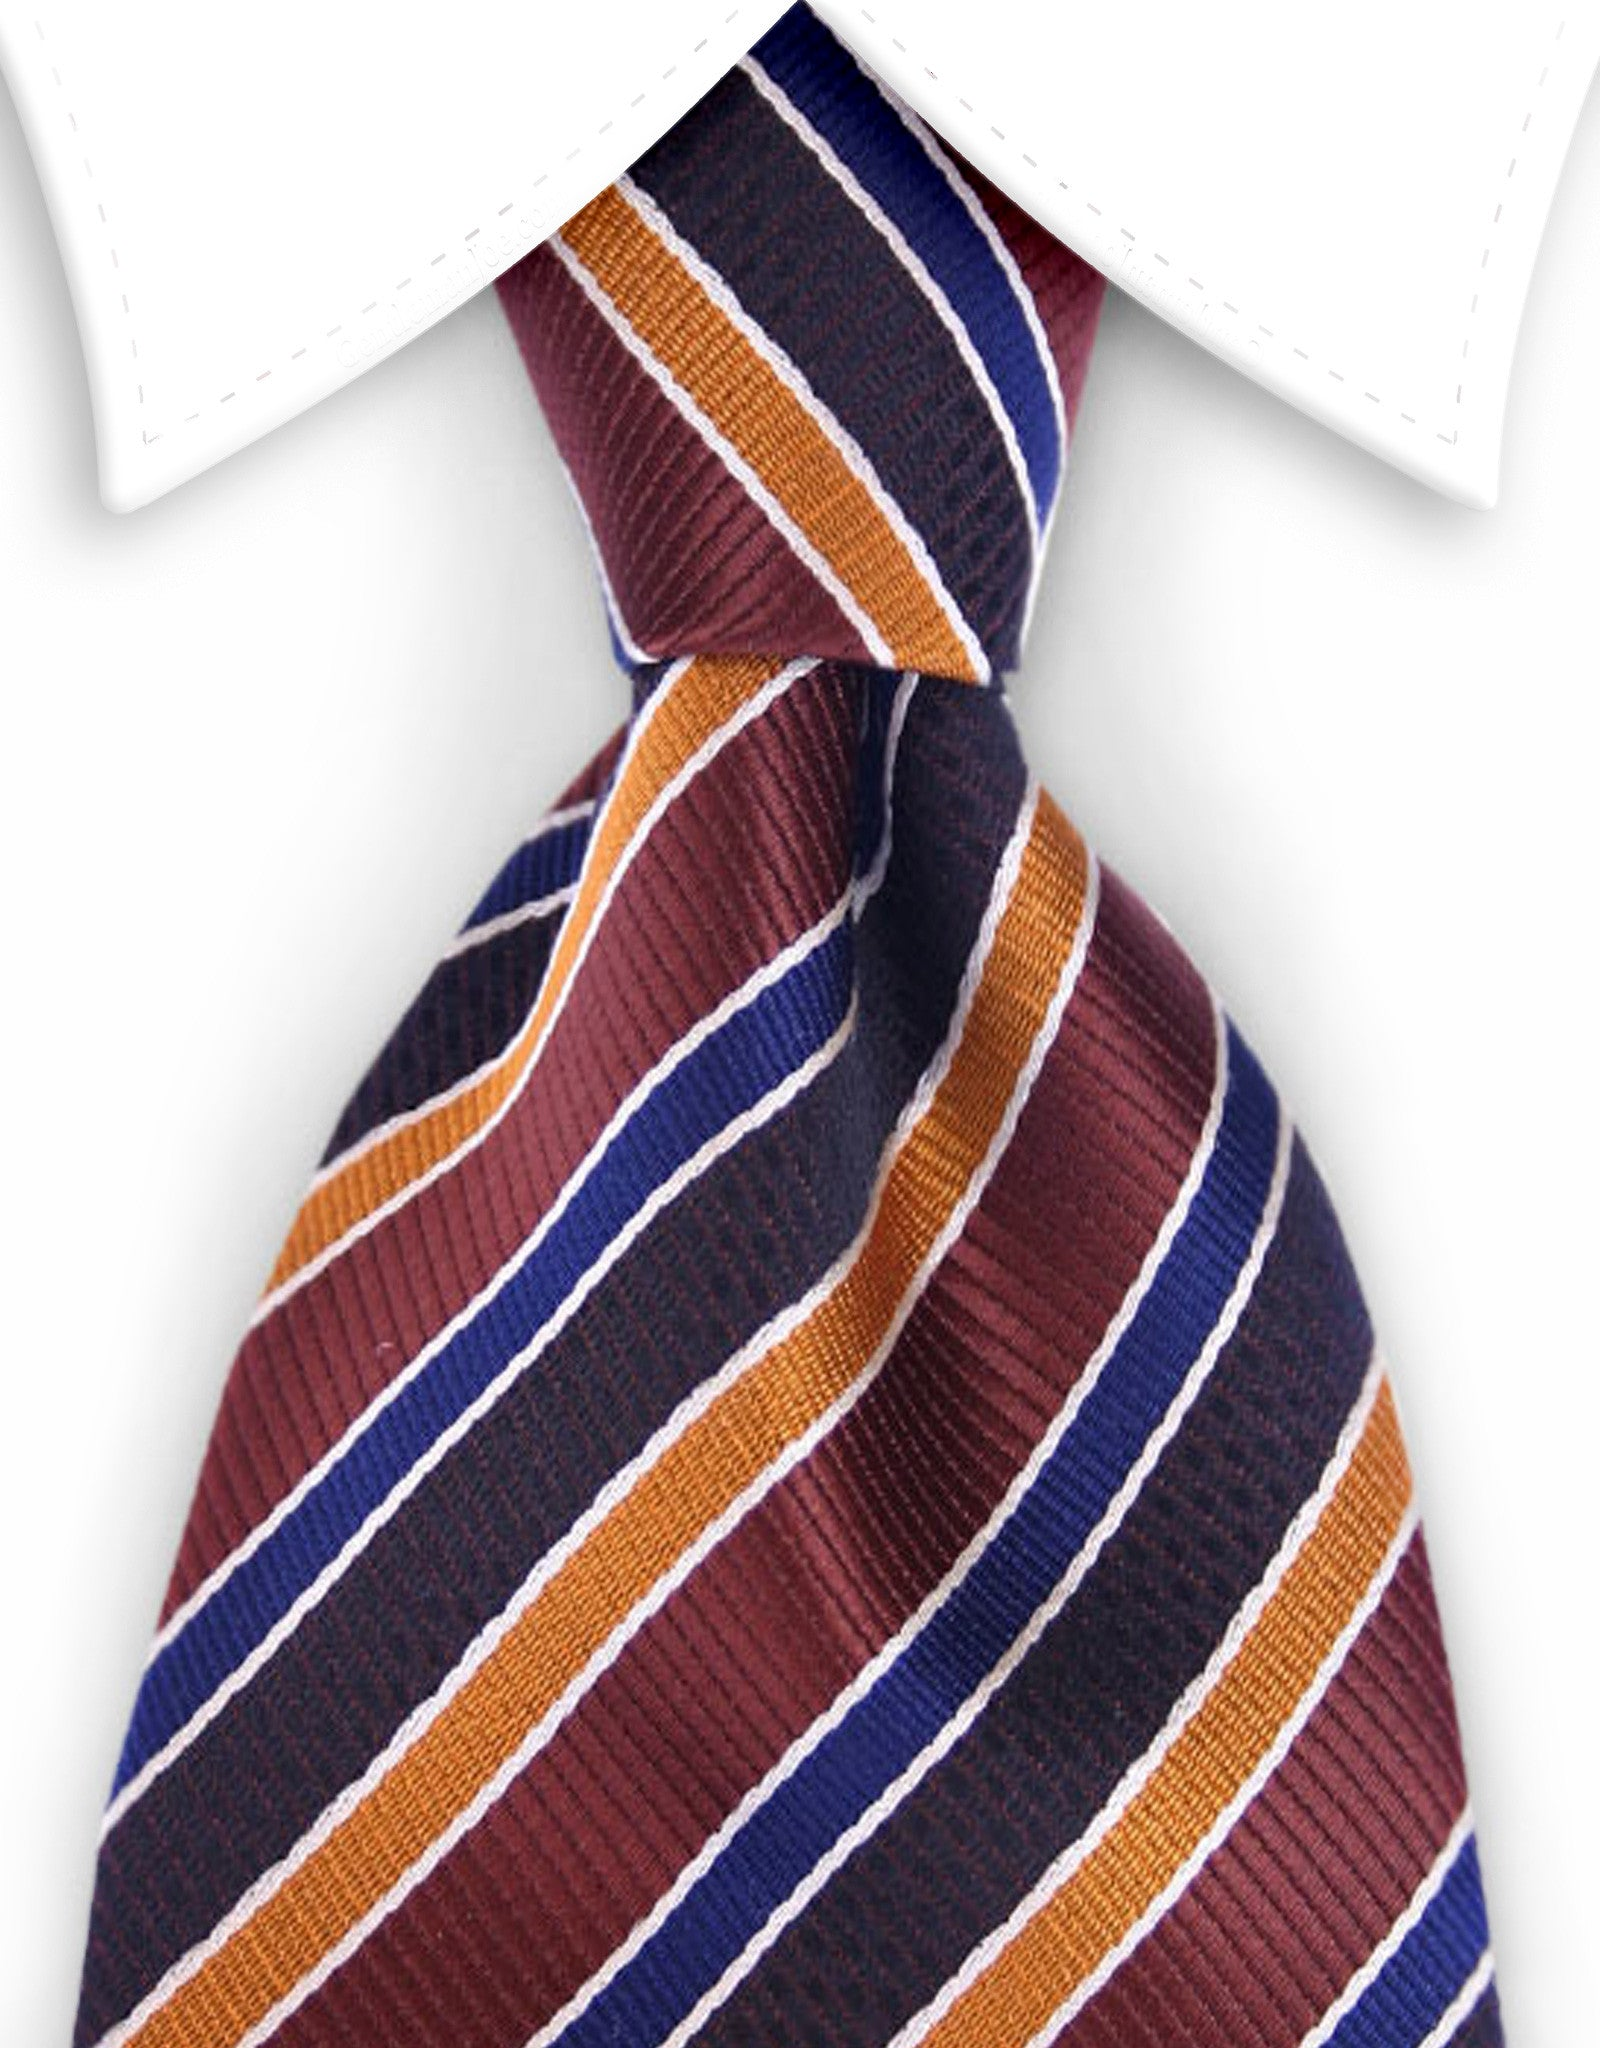 brown, navy blue, orange striped tie